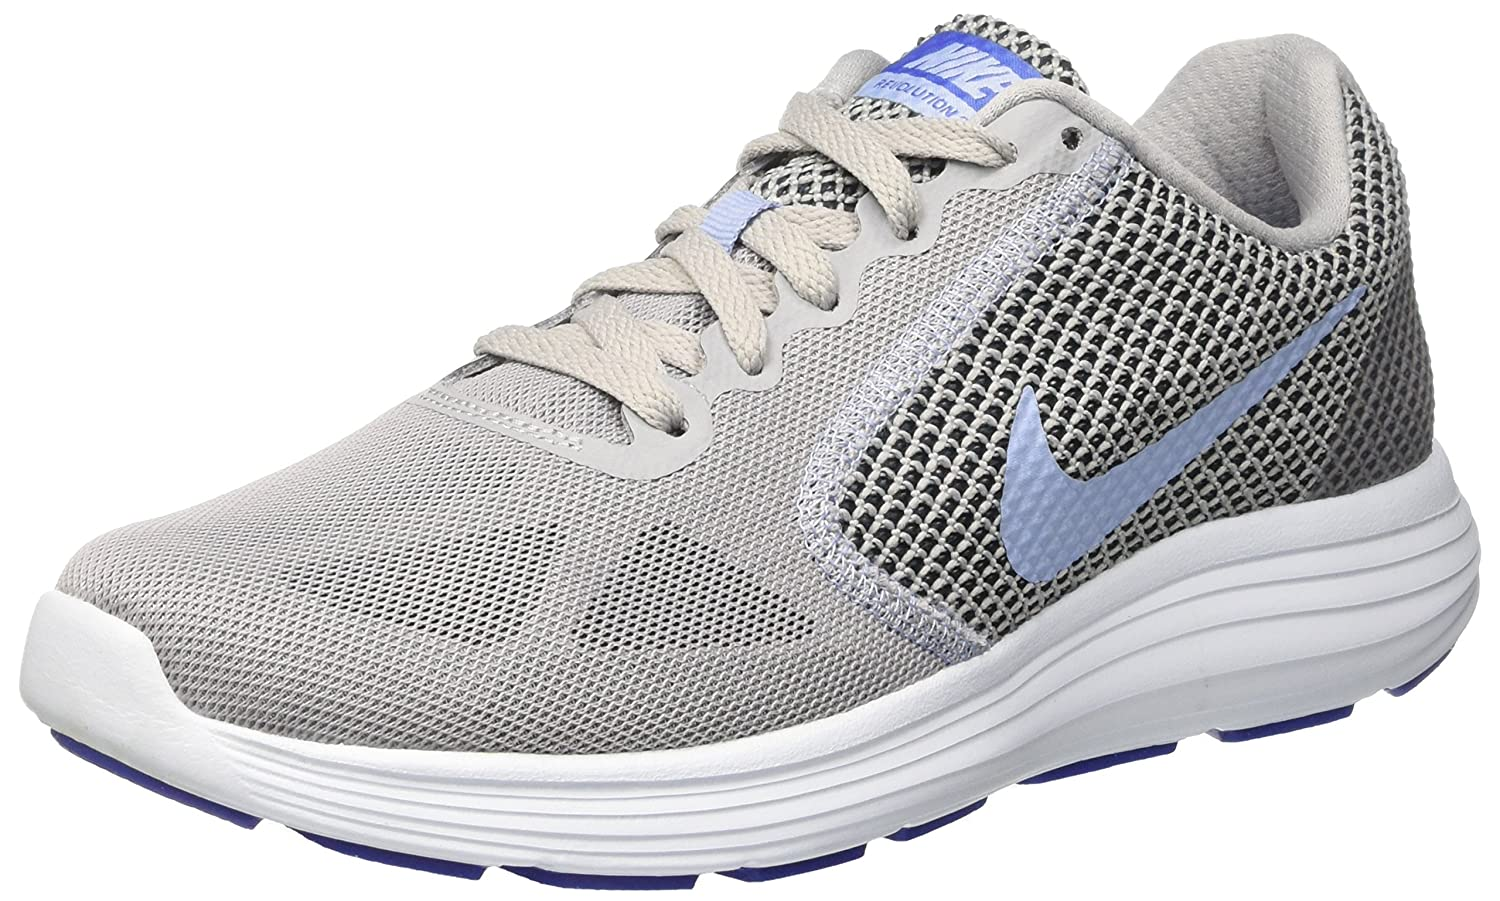 NIKE Women's Revolution 3 Running Shoe B01H60590M 7.5 B(M) US|Wolf Grey/Aluminum/Black/Blue Tint